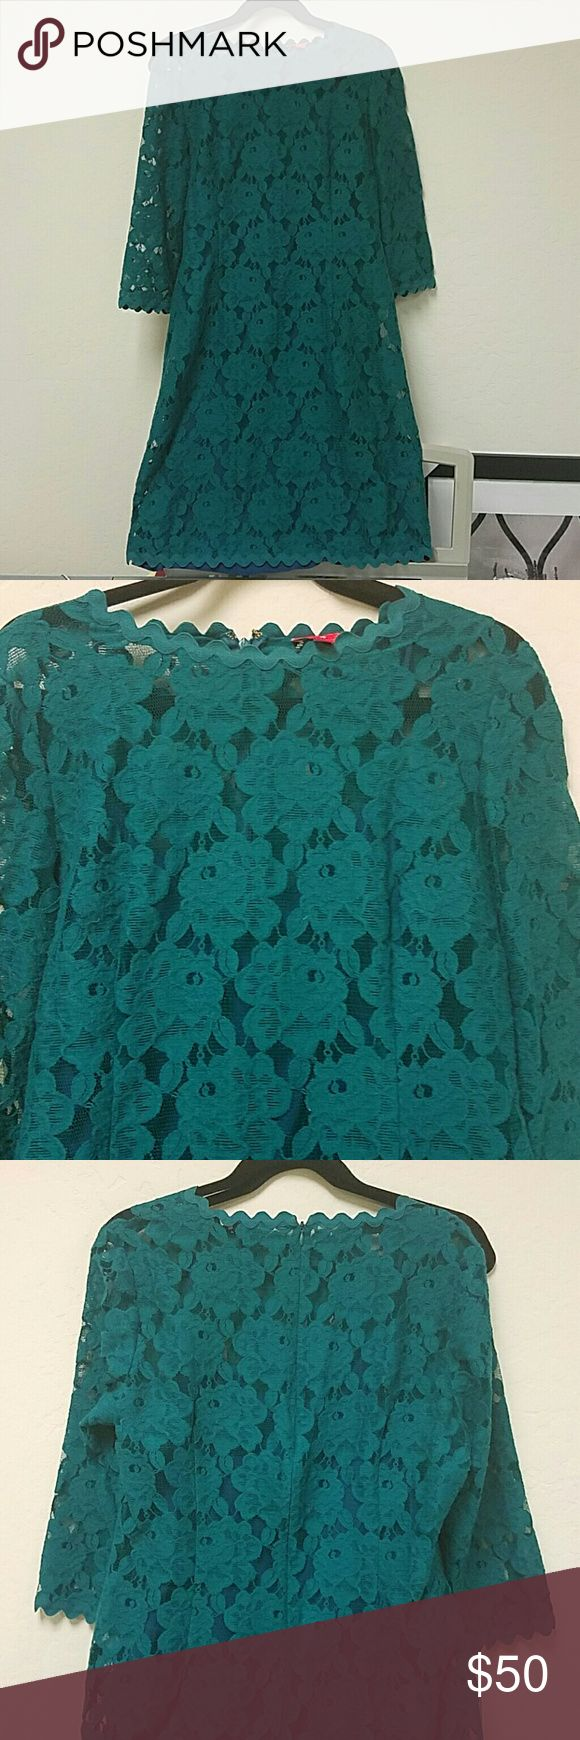 Ivank Trump Size 14 Green Lace Dress Worn 3 times, in perfect condition. Size 14 Ivanka Trump Dresses Long Sleeve